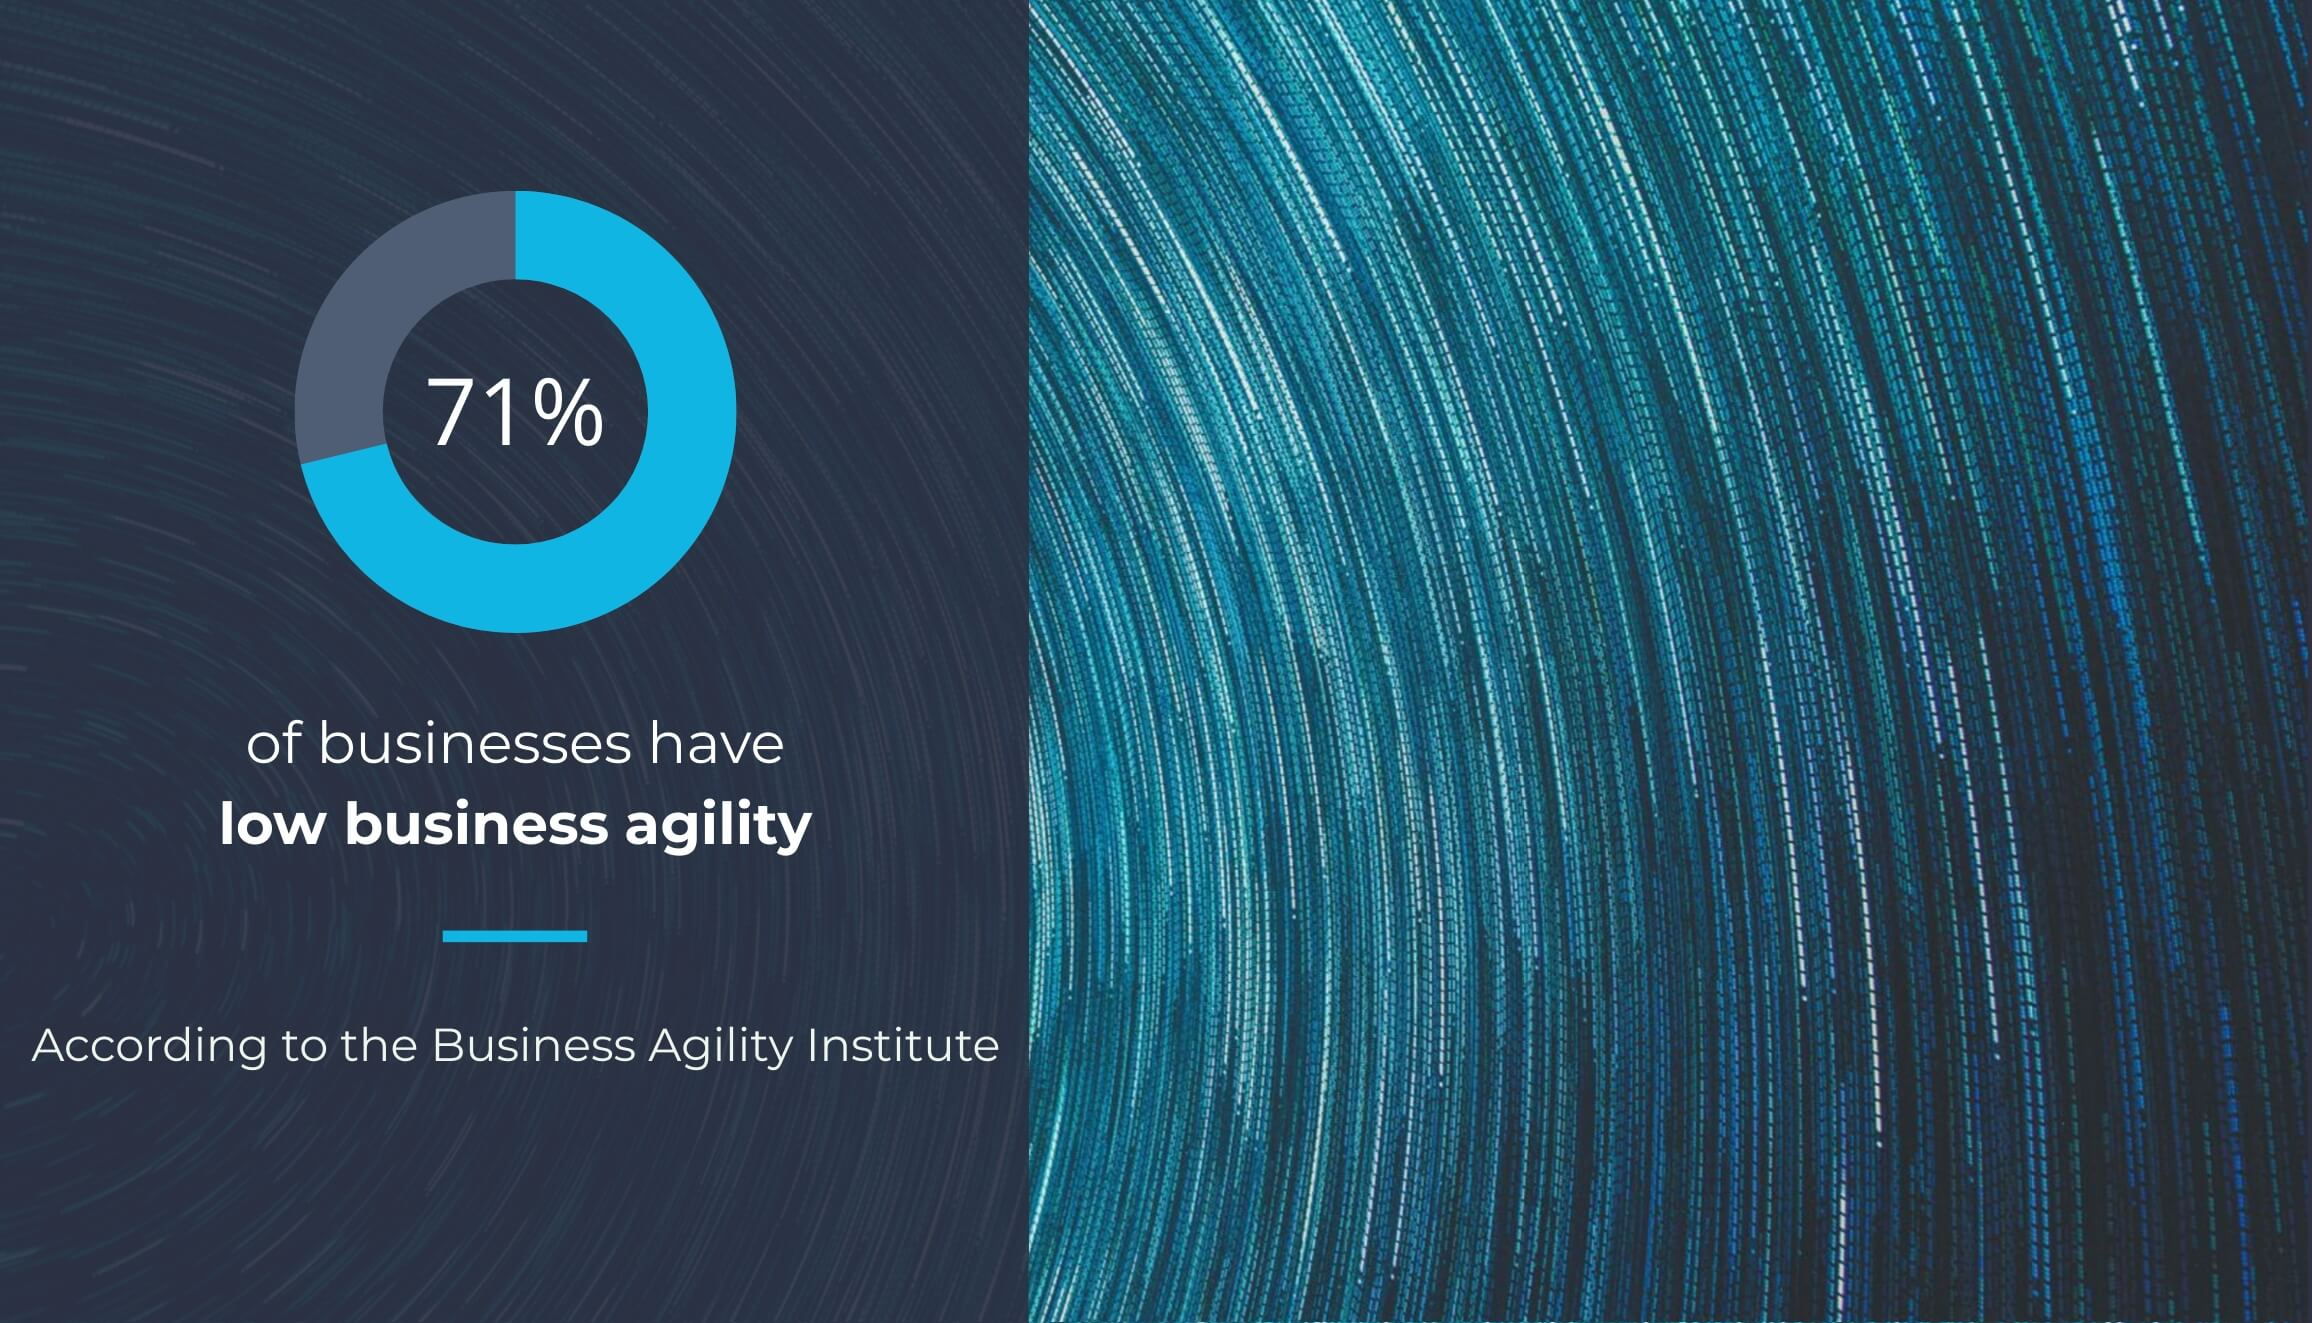 71% of businesses have low business agility